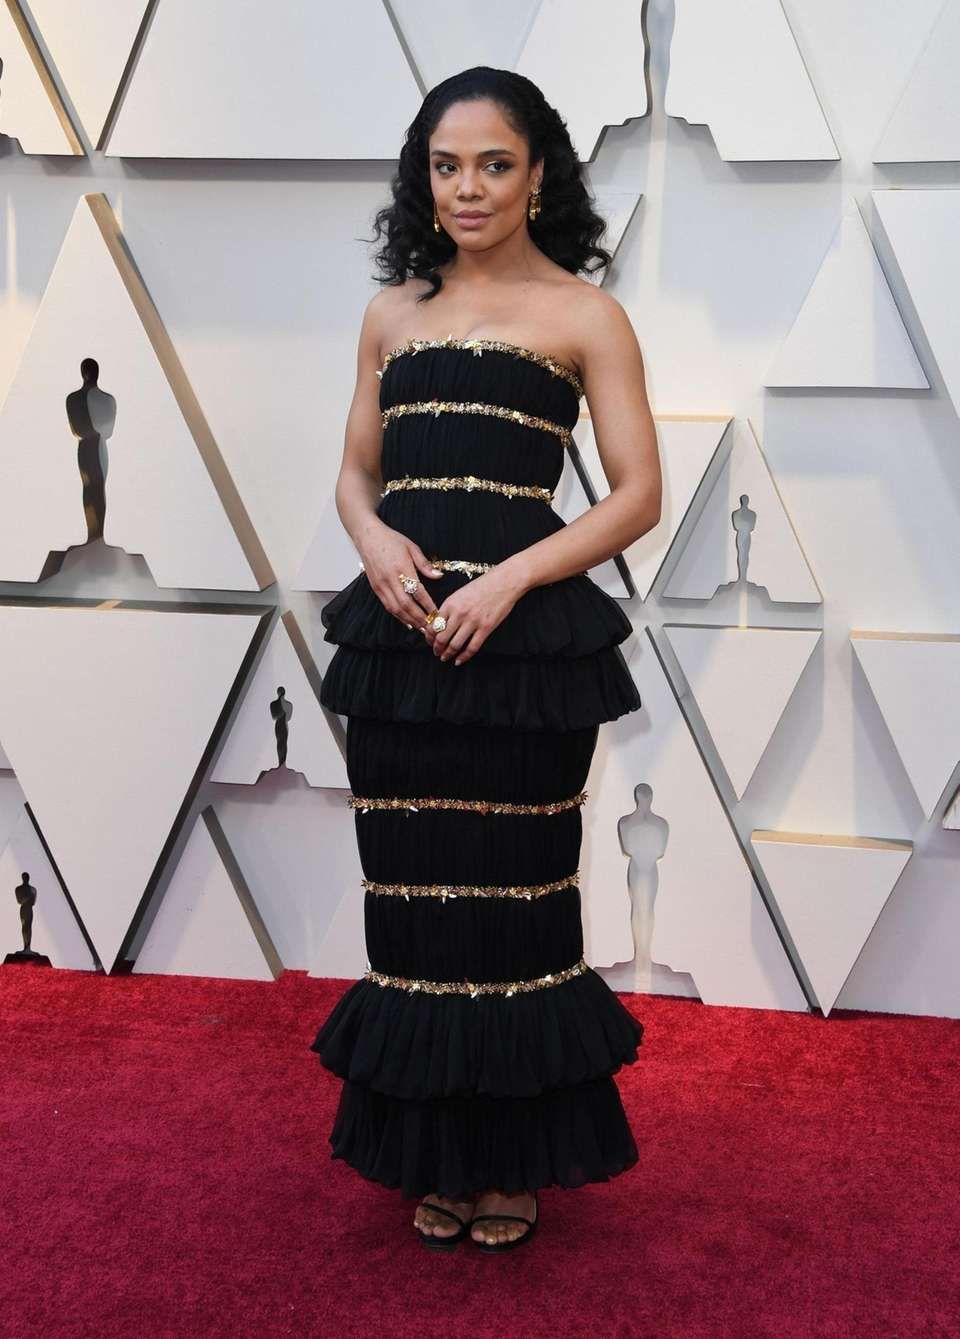 Actress Tessa Thompson arrives for the 91st Annual